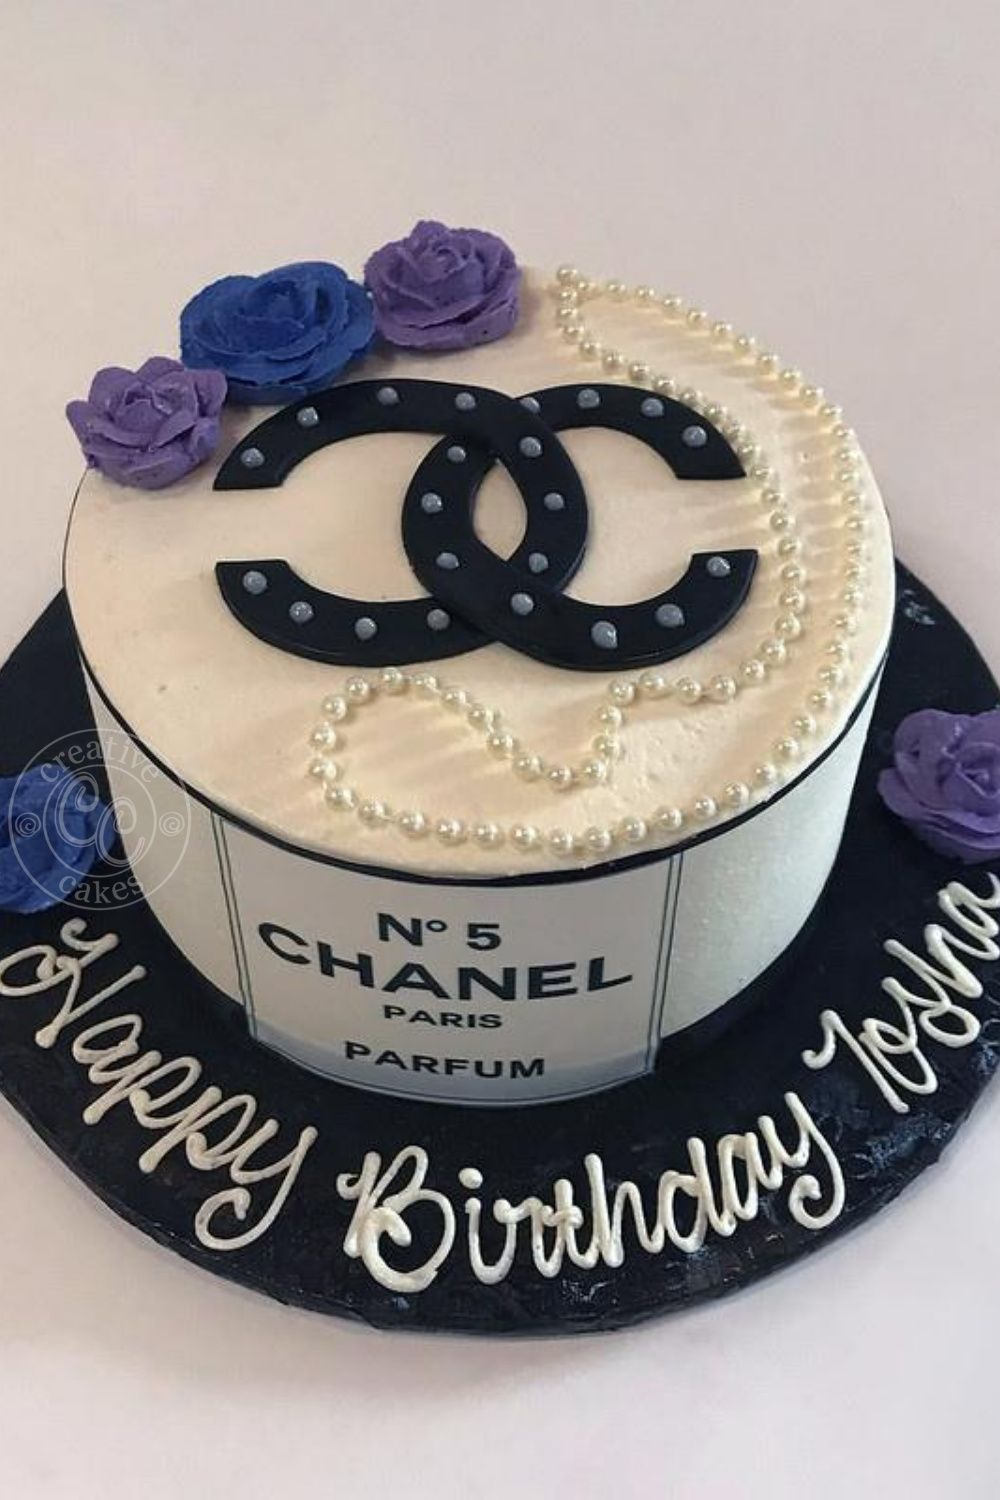 Chanel Birthday Cake In 2020 Chanel Birthday Cake Cake Birthday Cakes For Teens